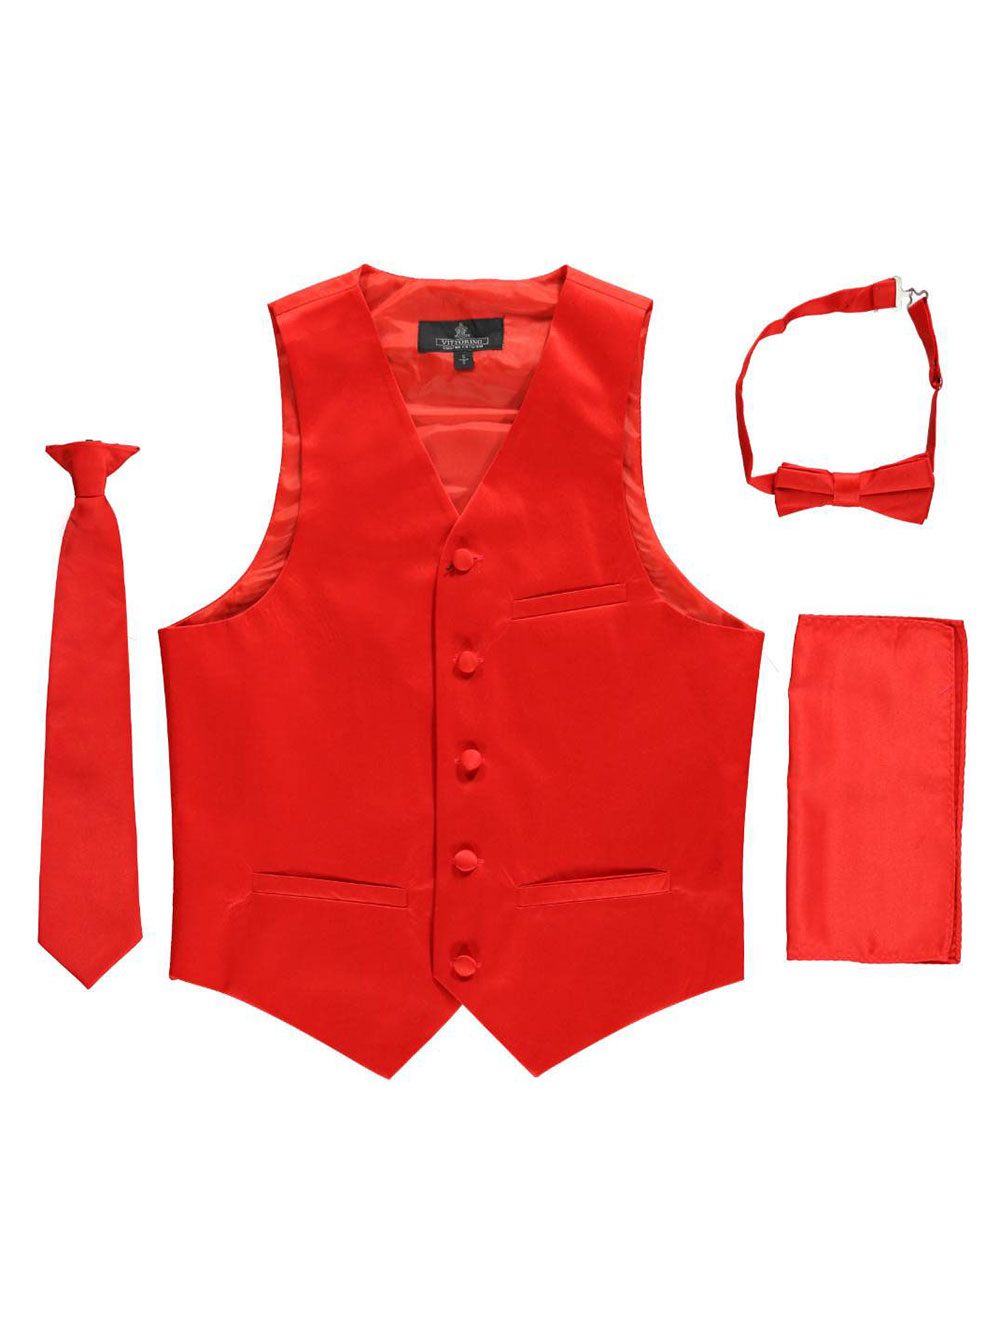 Red Vests